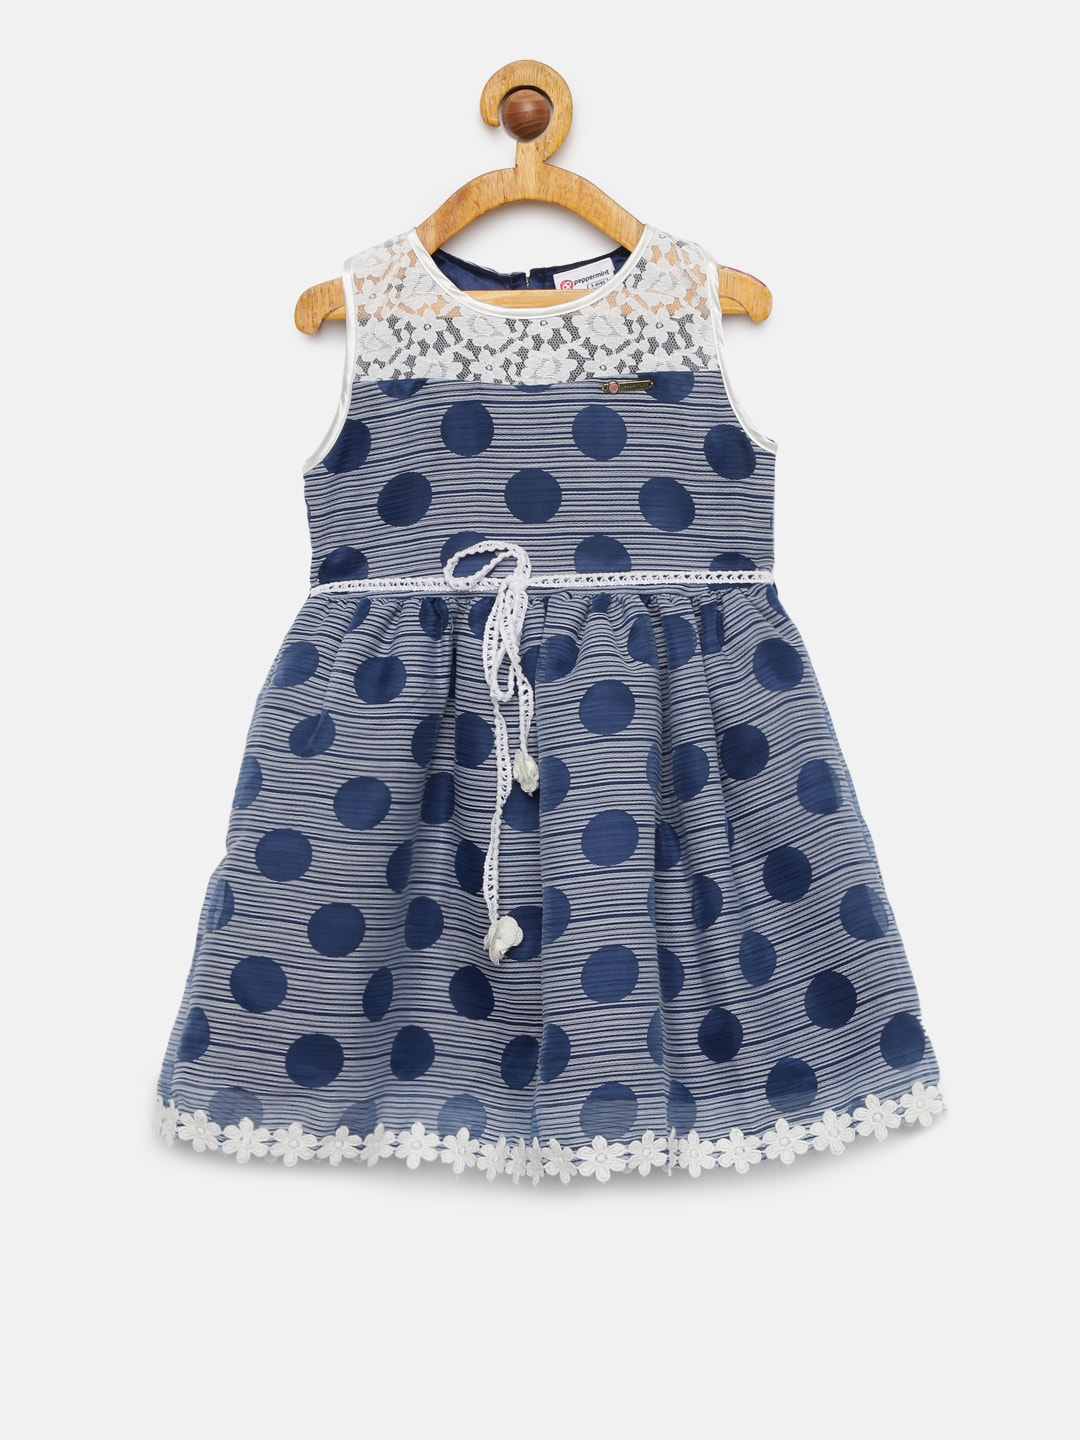 6f789d3f2 Polka Dots Dresses - Buy Polka Dots Dresses online in India - Myntra